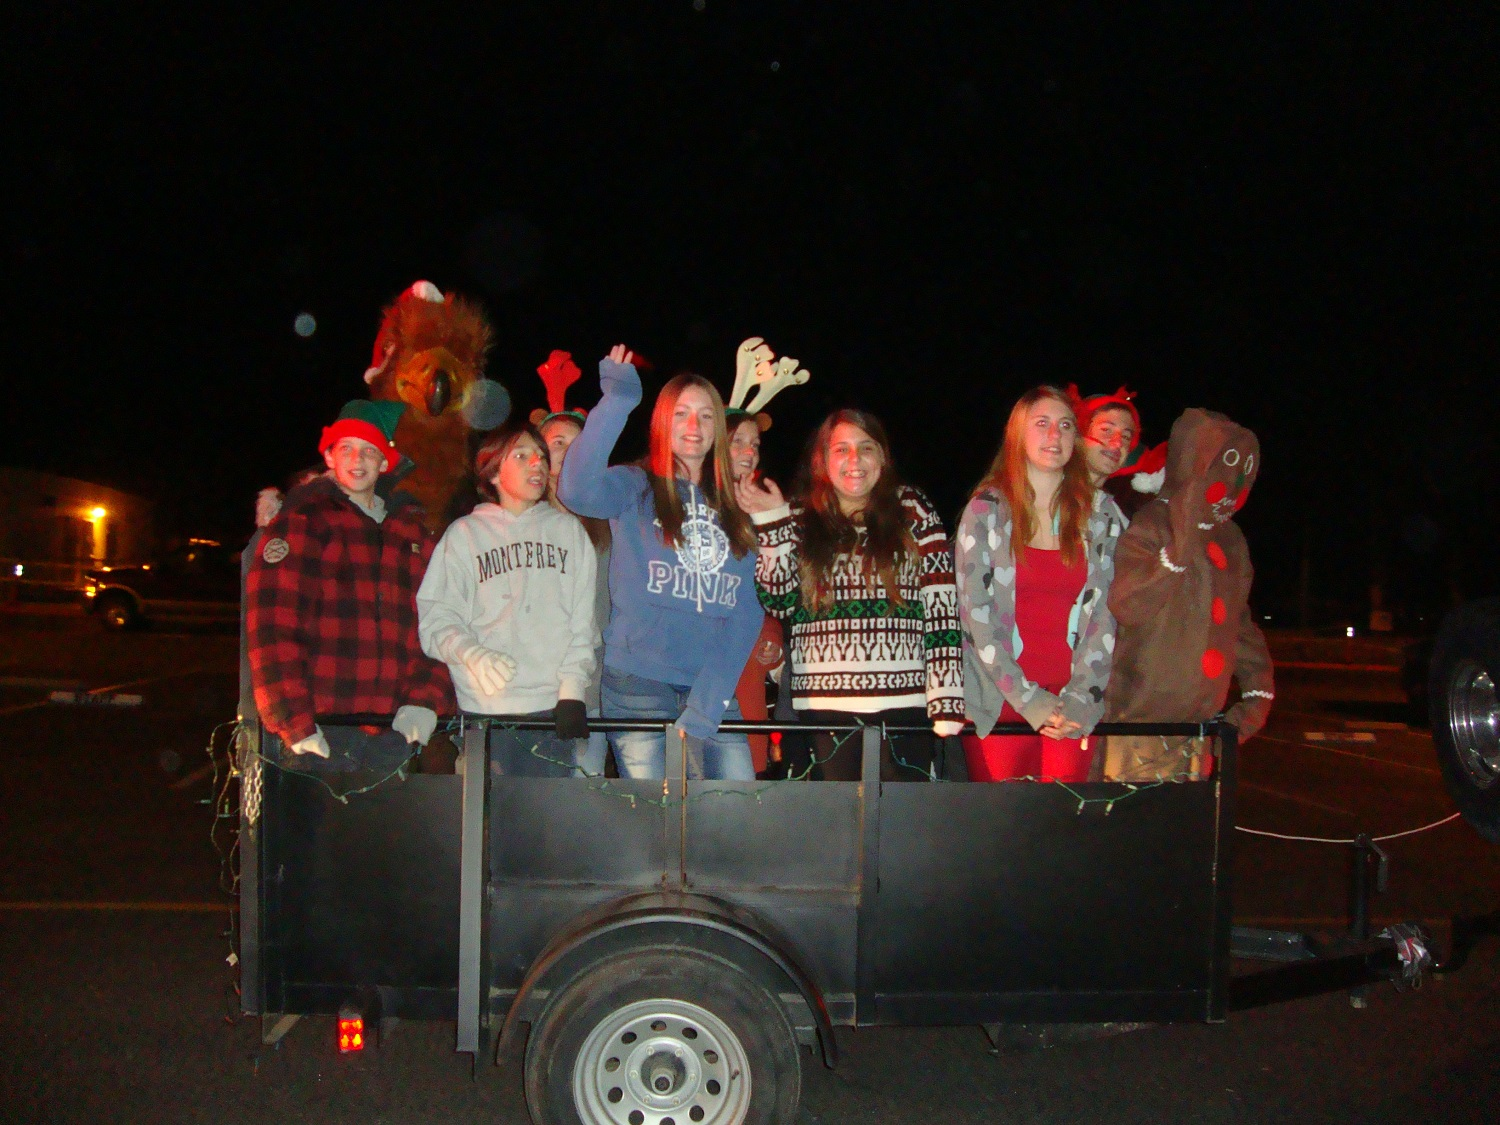 Students from Girl Scout Troop 2866 participating in the Parade of Lights Rivergold Holiday Float - courtesy of Rivergold